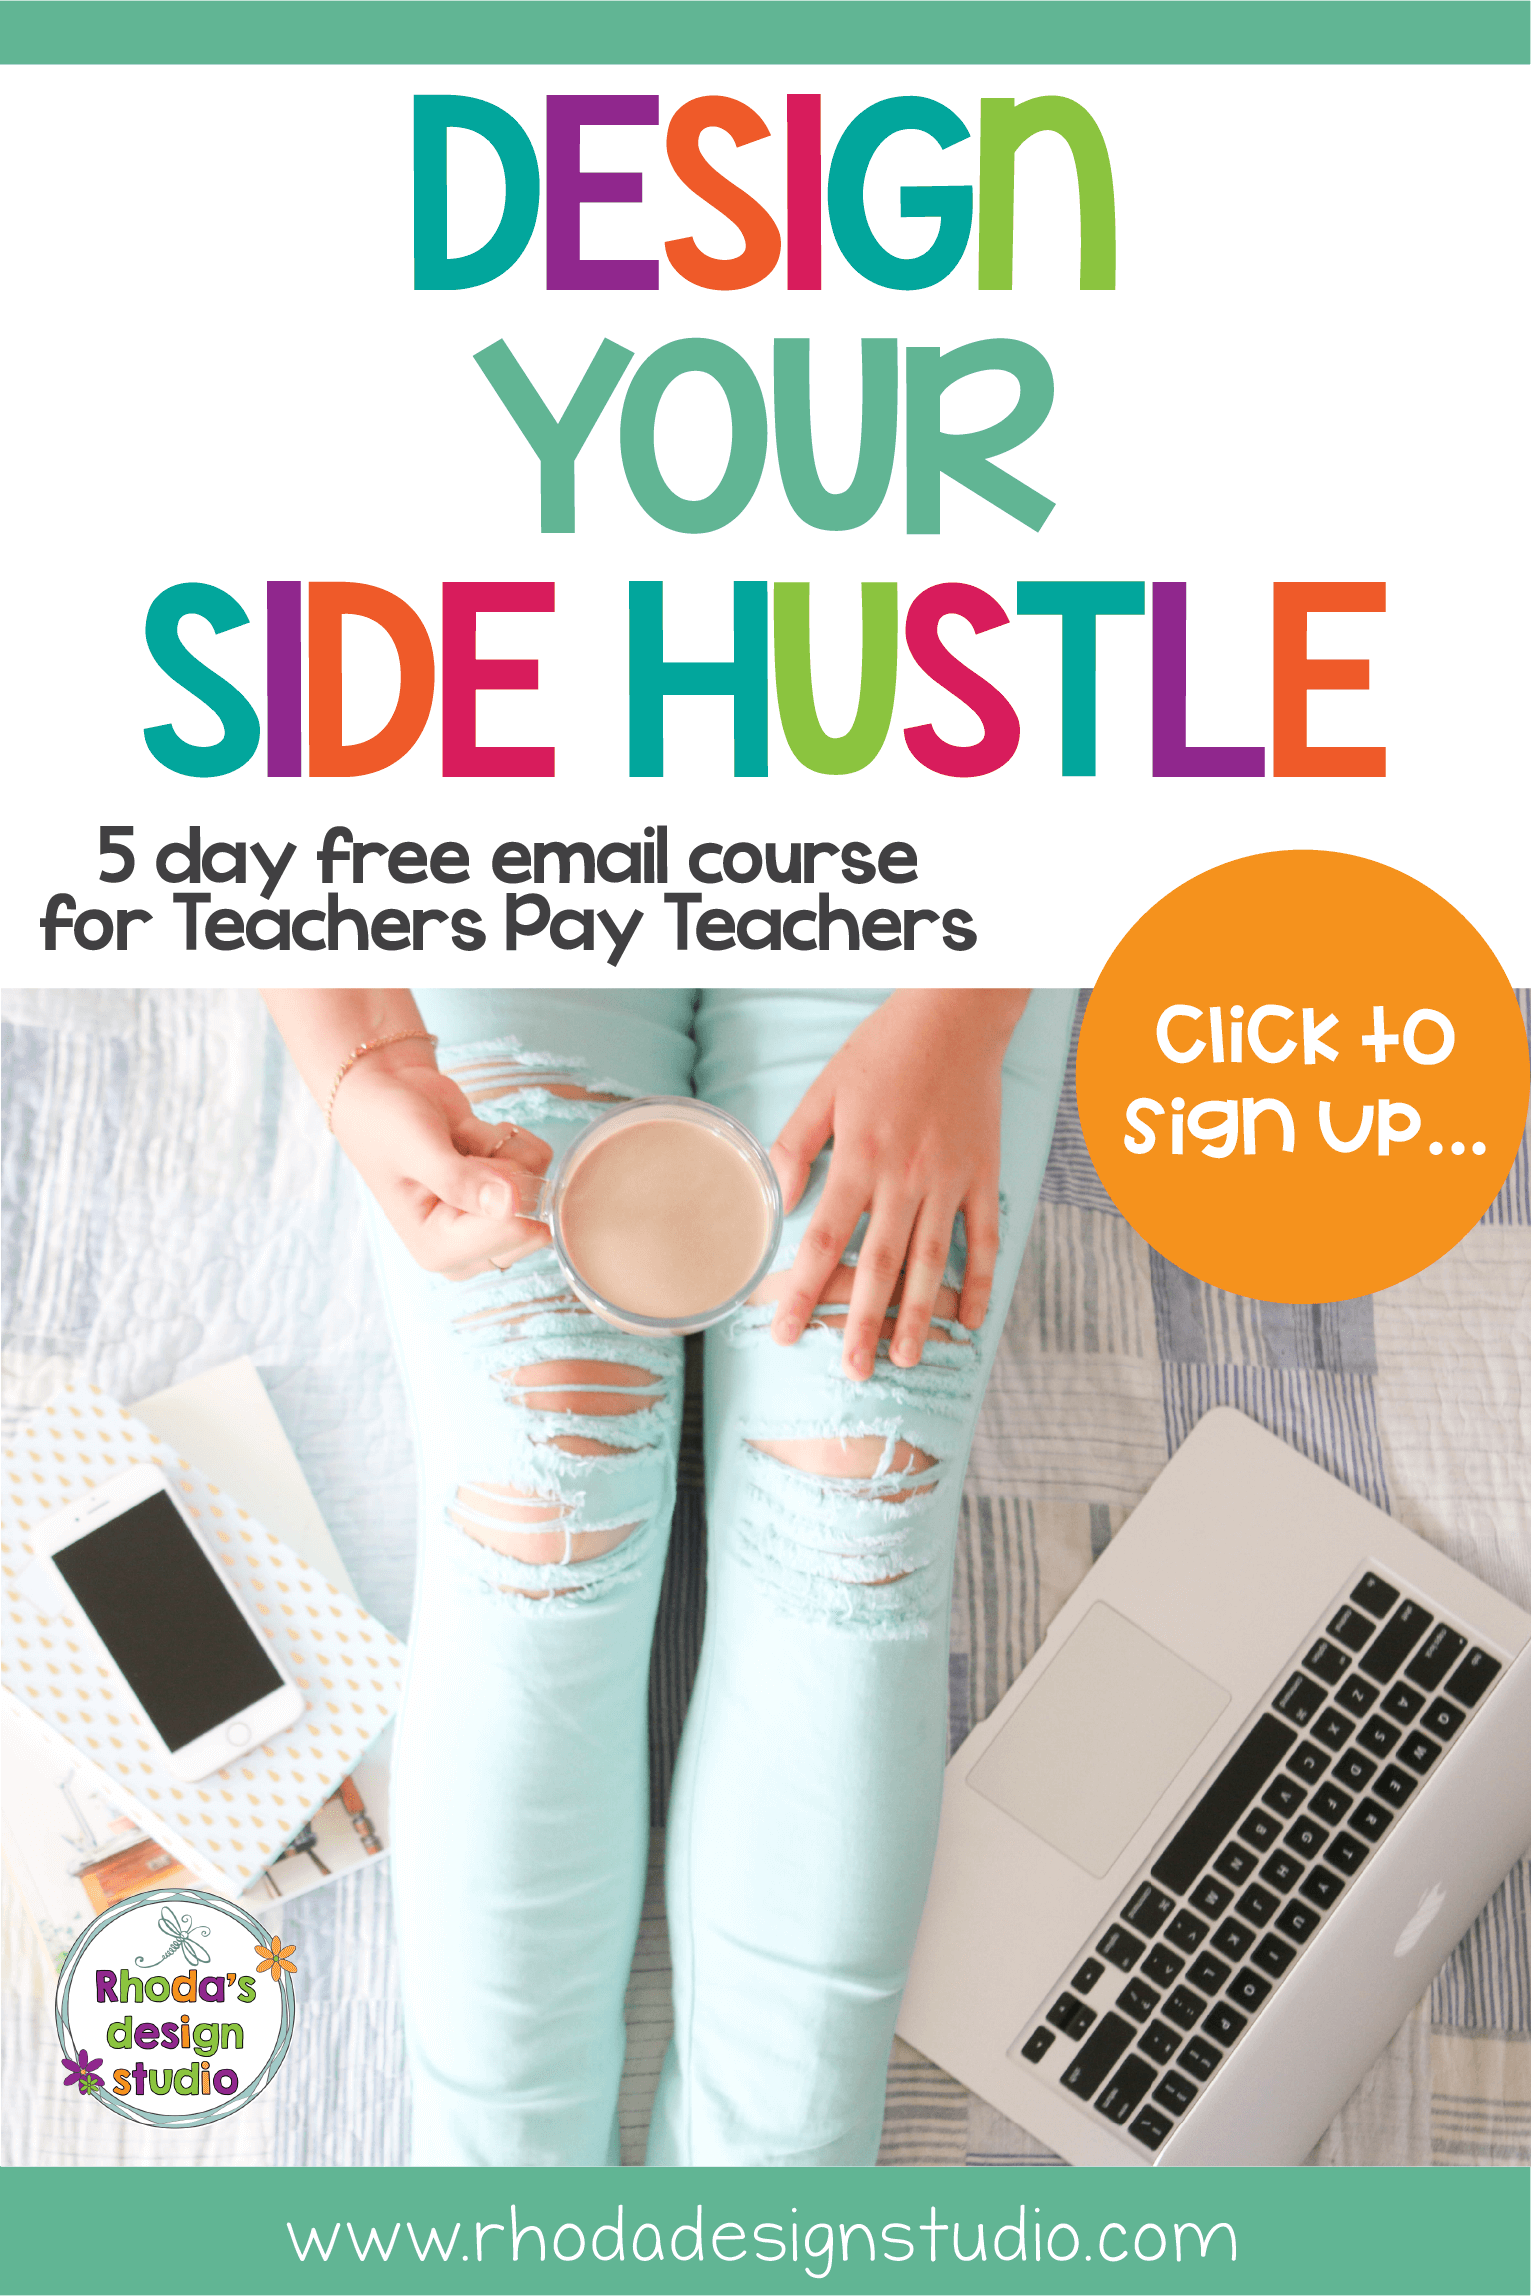 Sign up for a free 5 day course that will teach you all about selling on Teachers Pay Teachers. Learn to sell on Teachers Pay Teachers. Top Tips for New TpT Sellers. Make money online as a teacher by creating a side-hustle selling lesson plans. Rhoda Design Studio